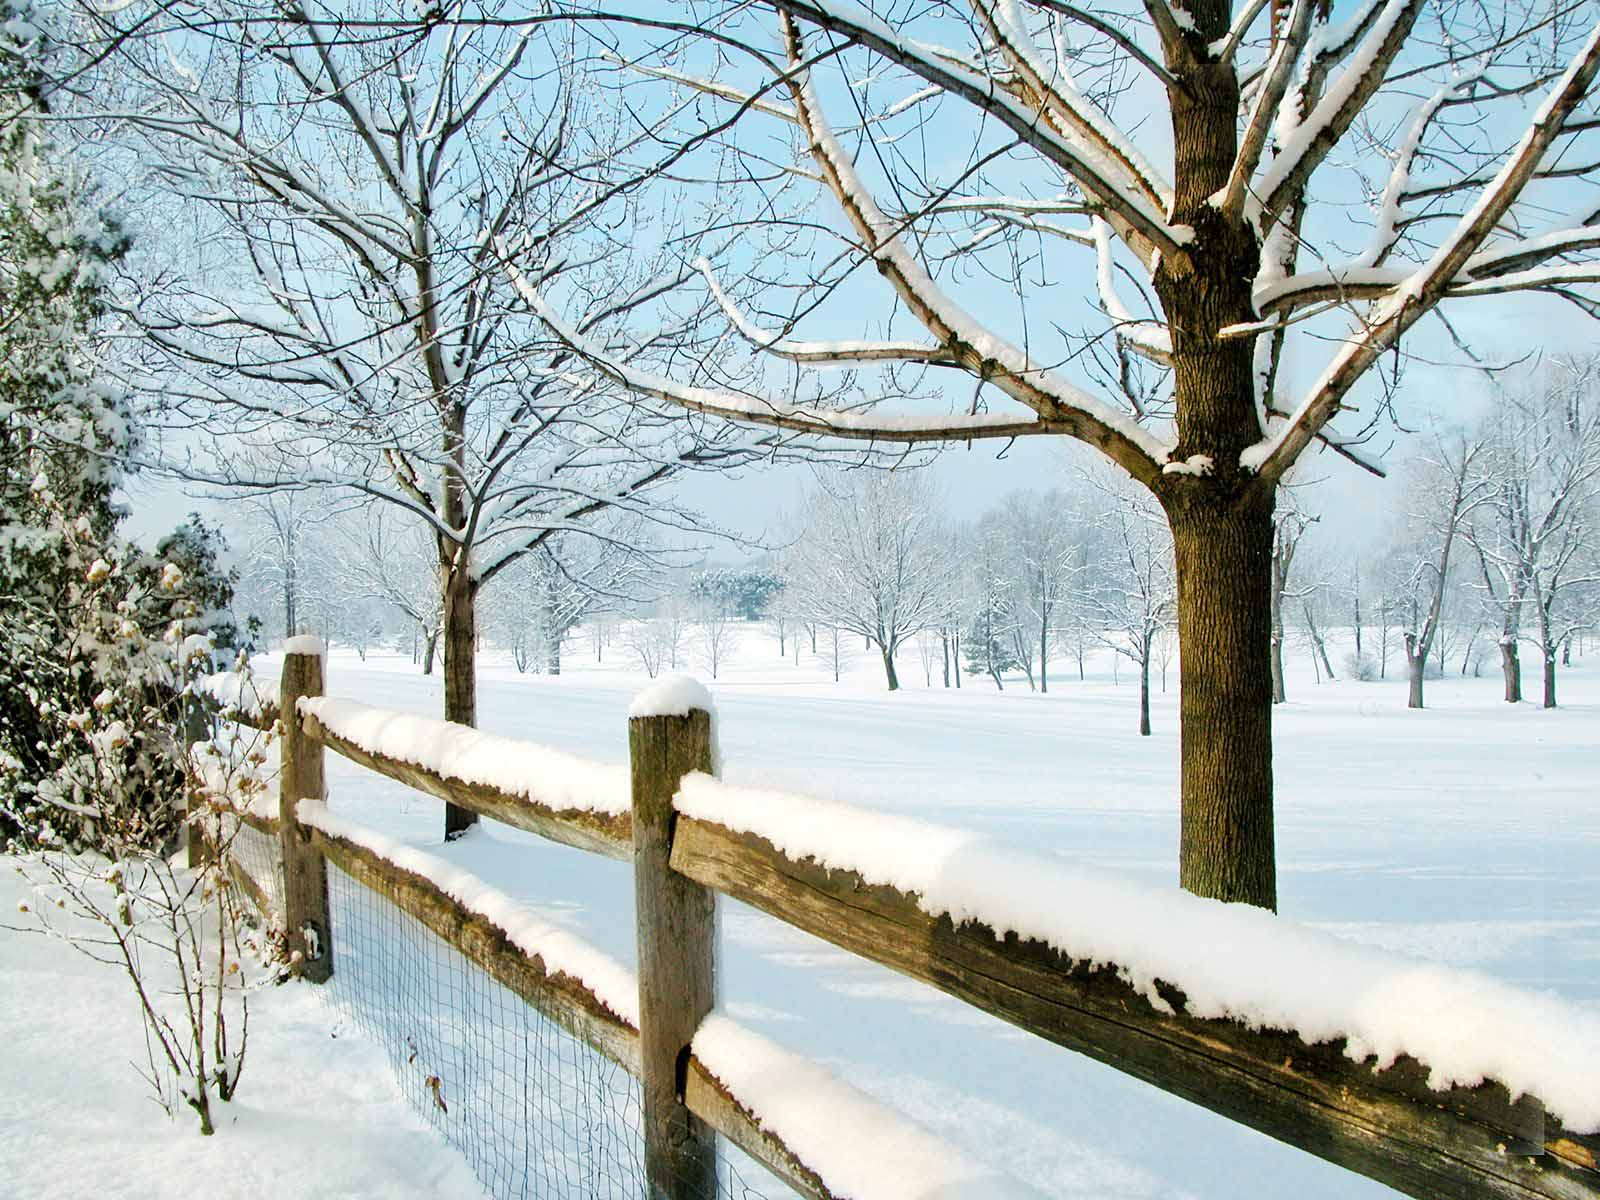 Winter Scenes for Desktop 1600x1200